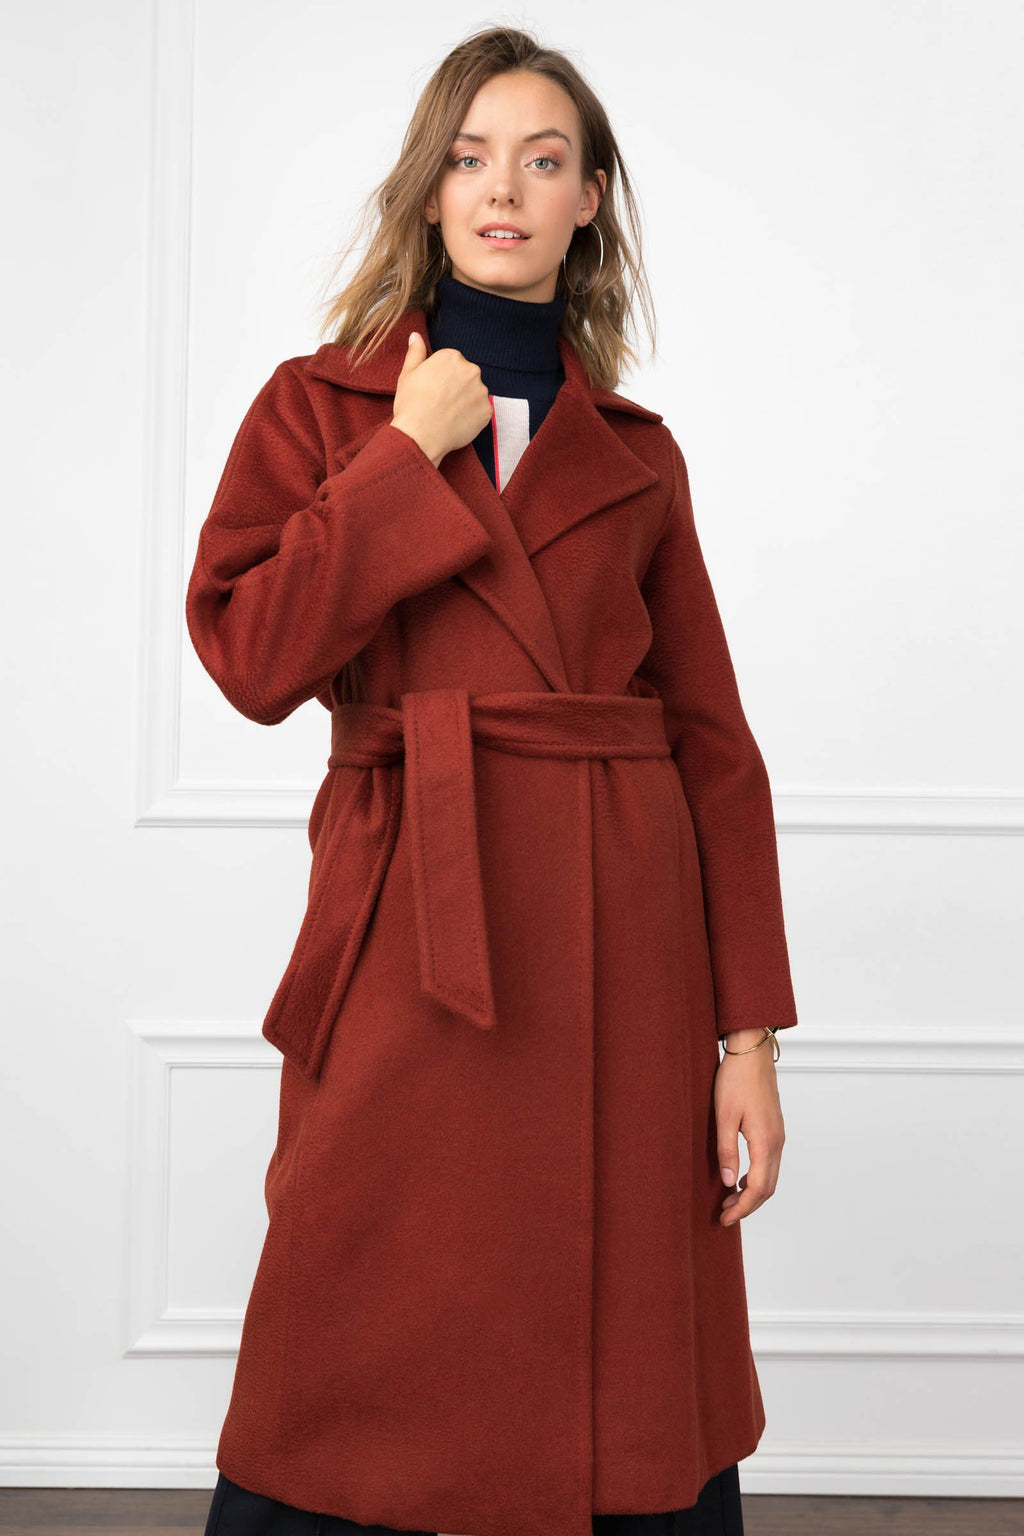 Carey Coat Red Wine in Coats & Jackets by J.ING - an L.A based women's fashion line